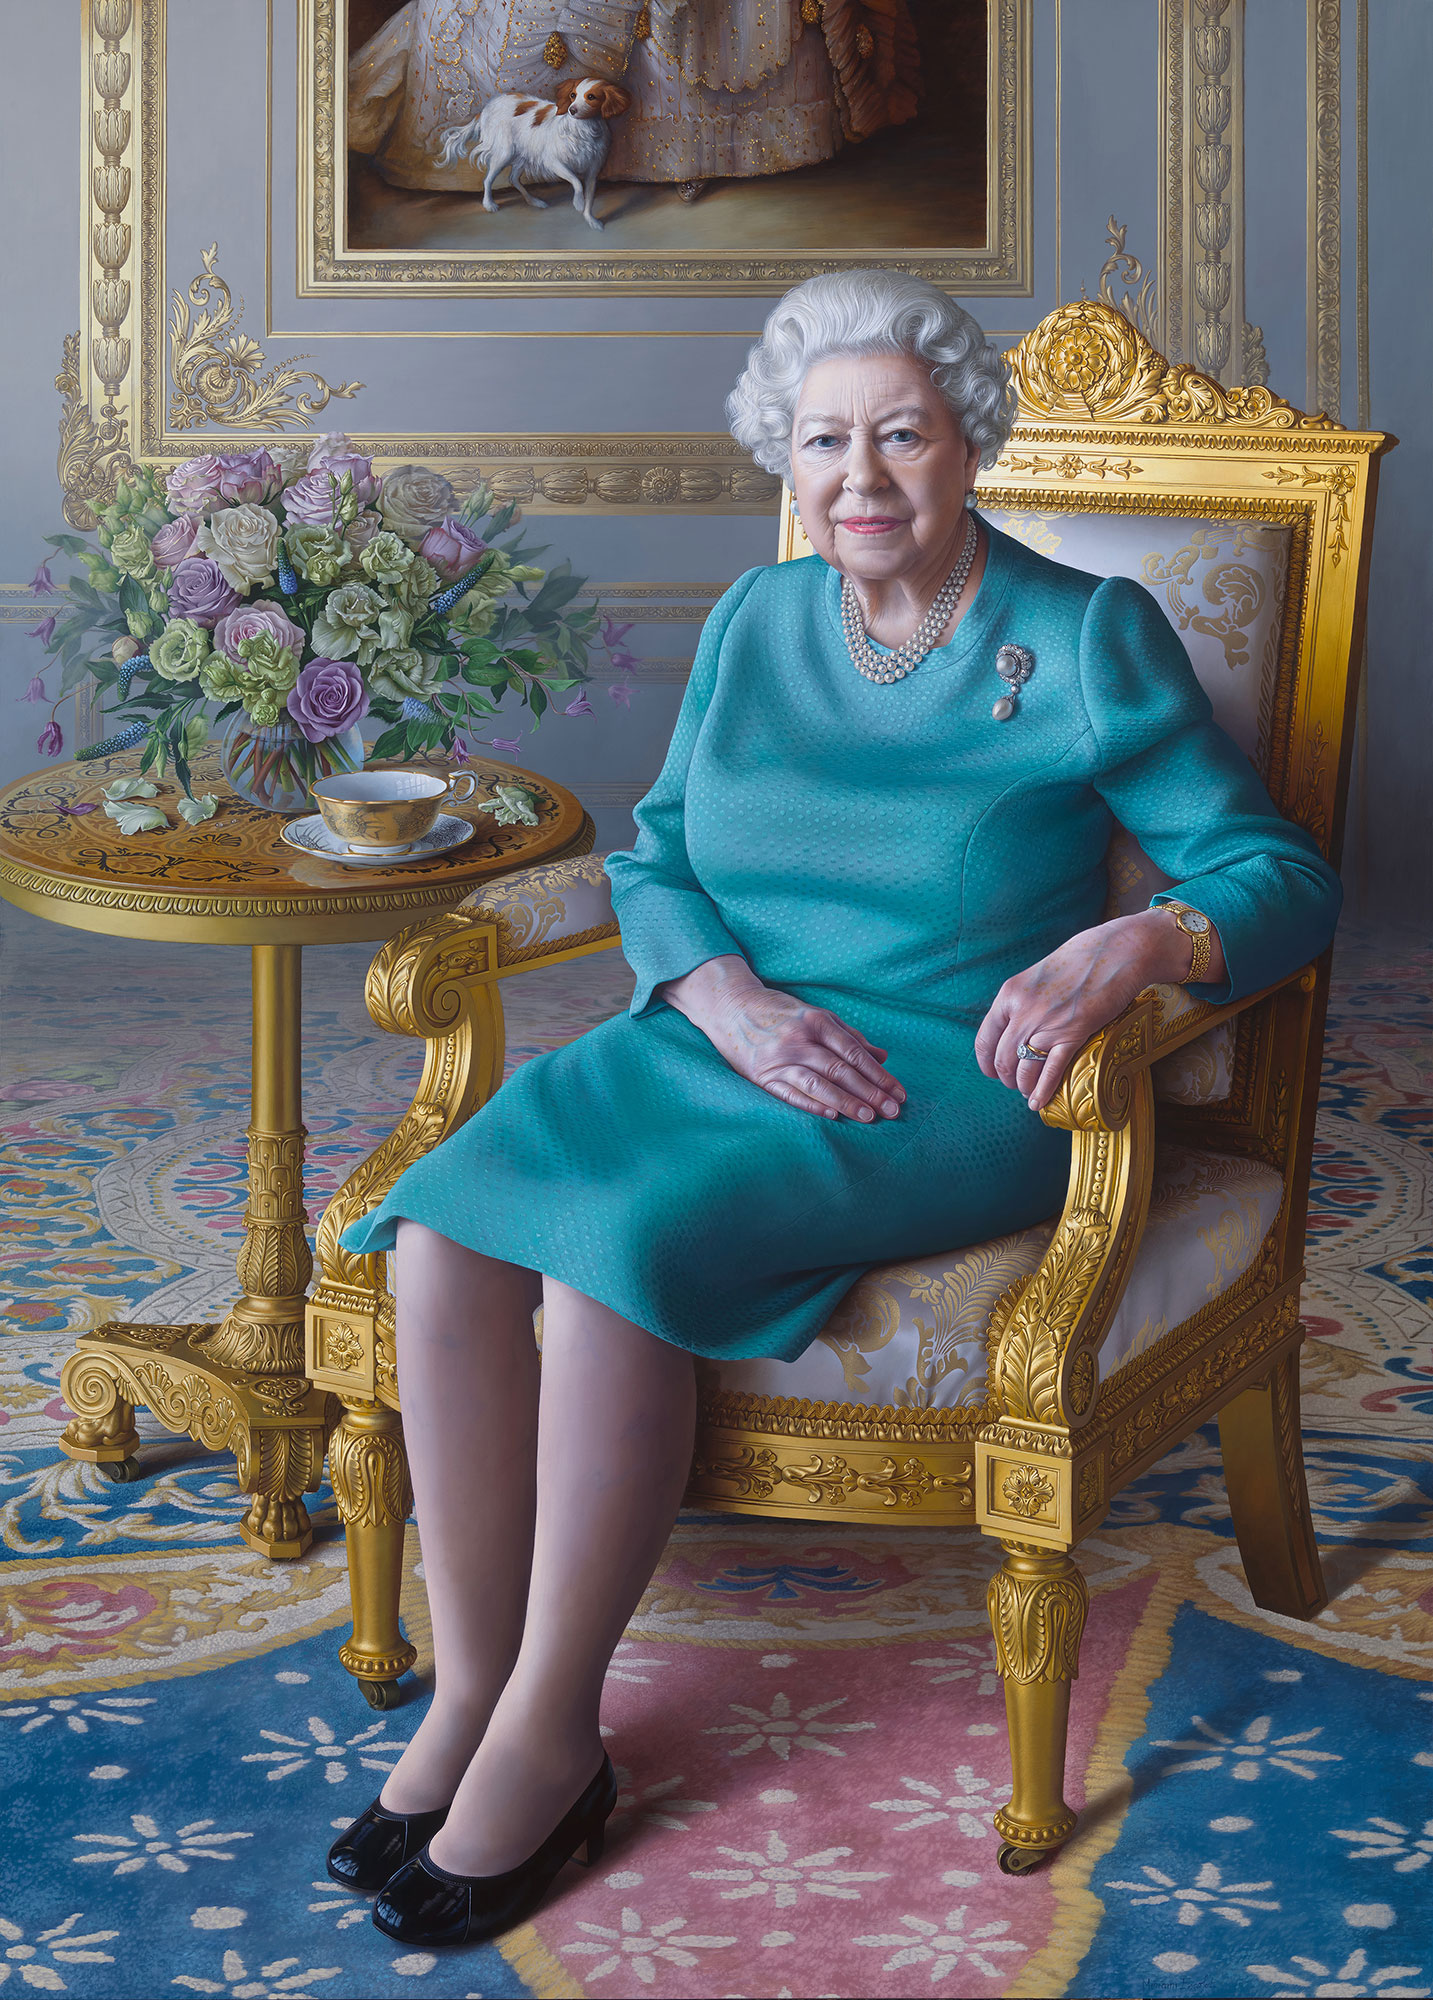 EMBARGOED UNTIL 5 PM Queen Elizabeth